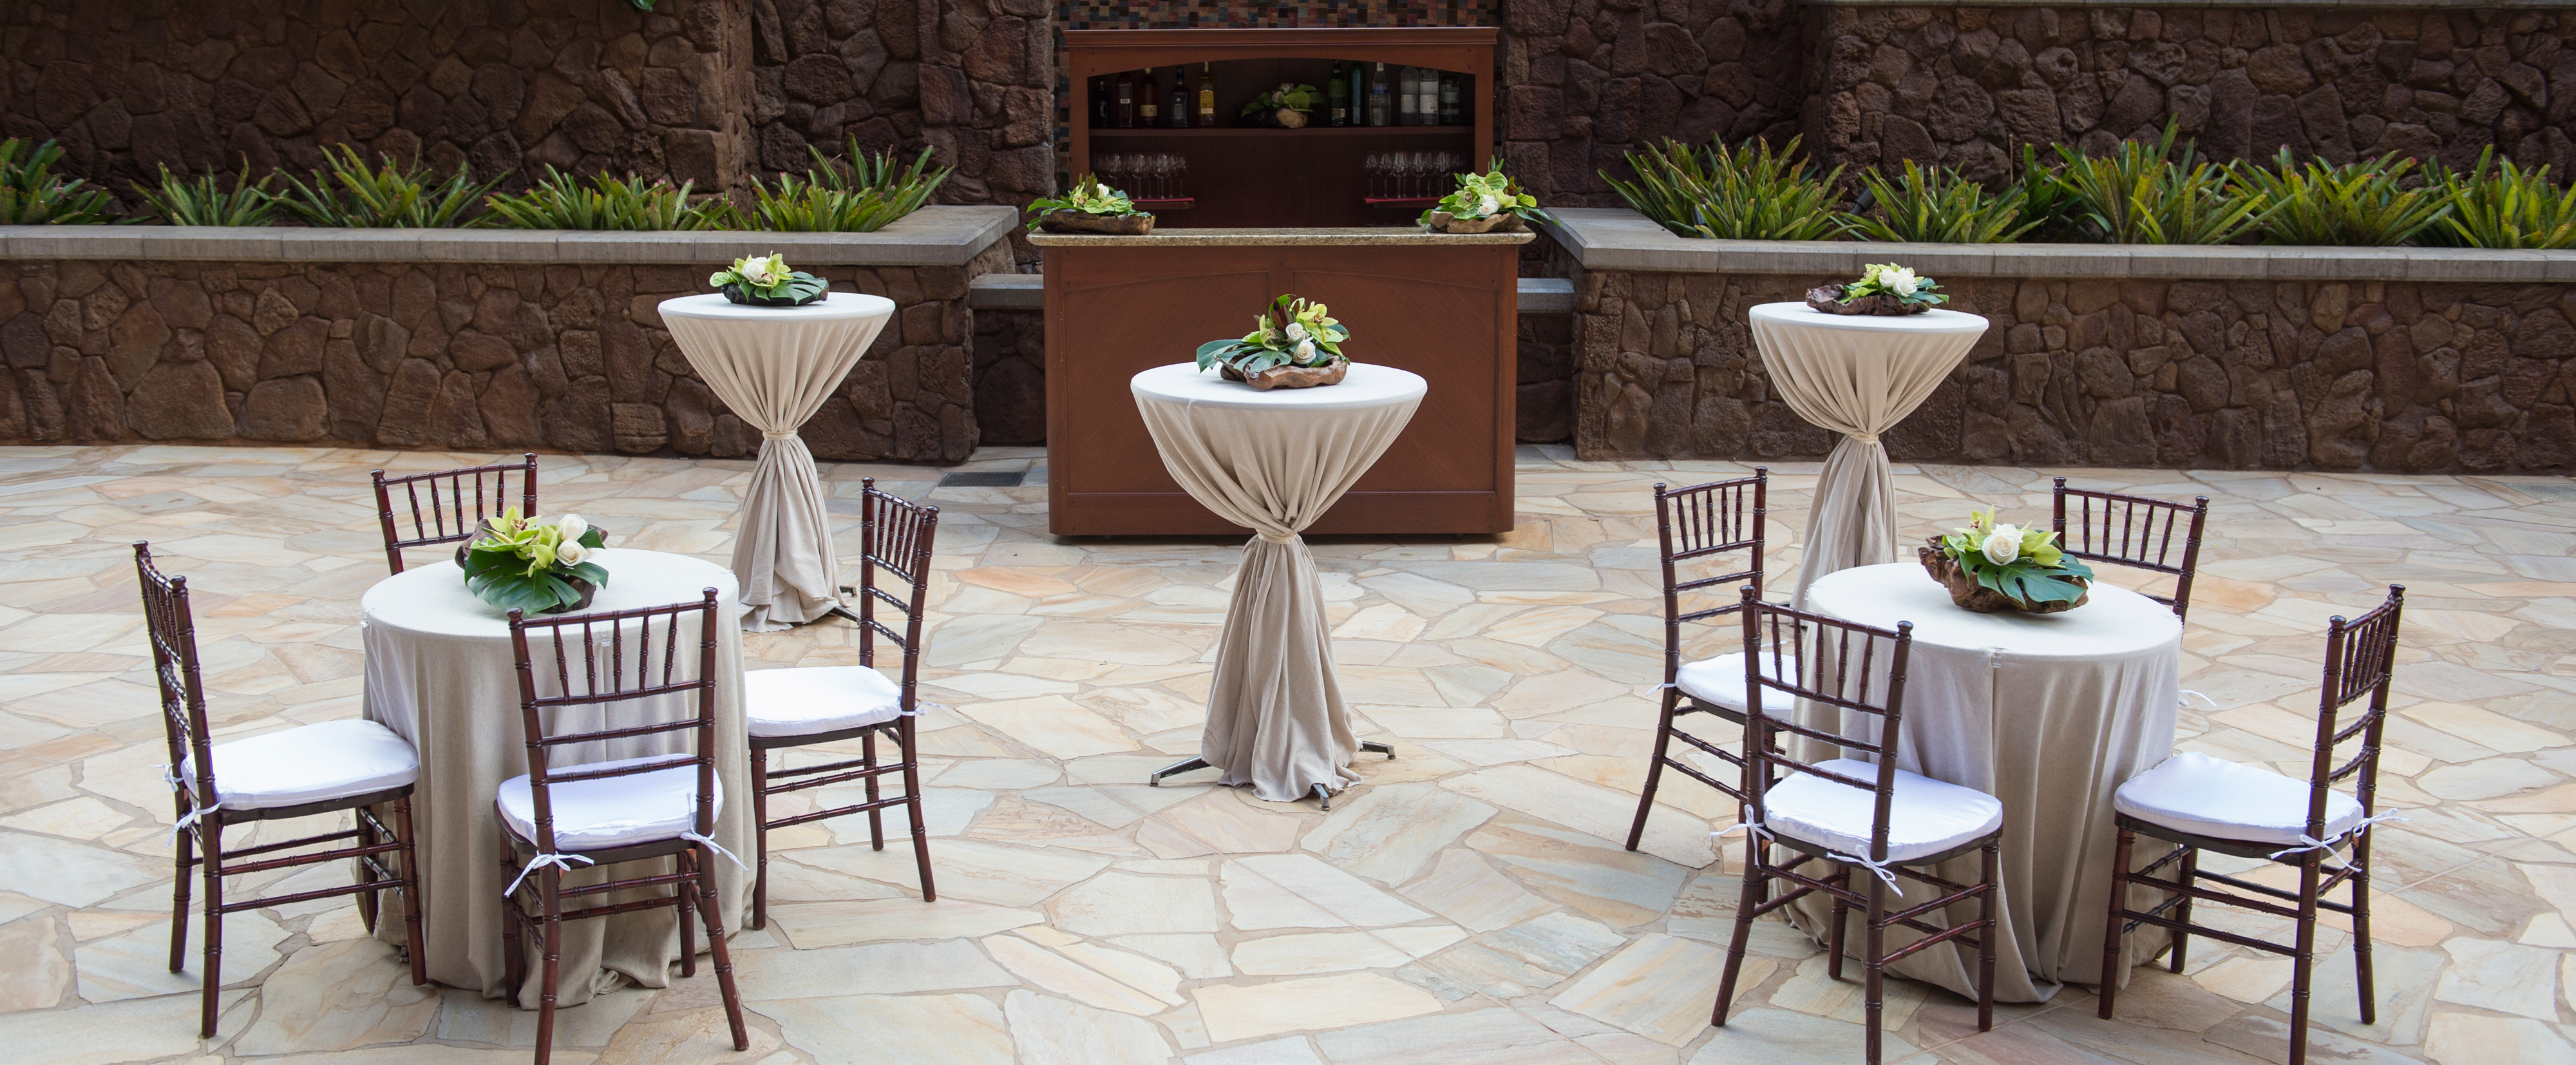 A courtyard setting with 2 tables for 4 and 3 fabric-draped bar tables, all with tropical centerpieces